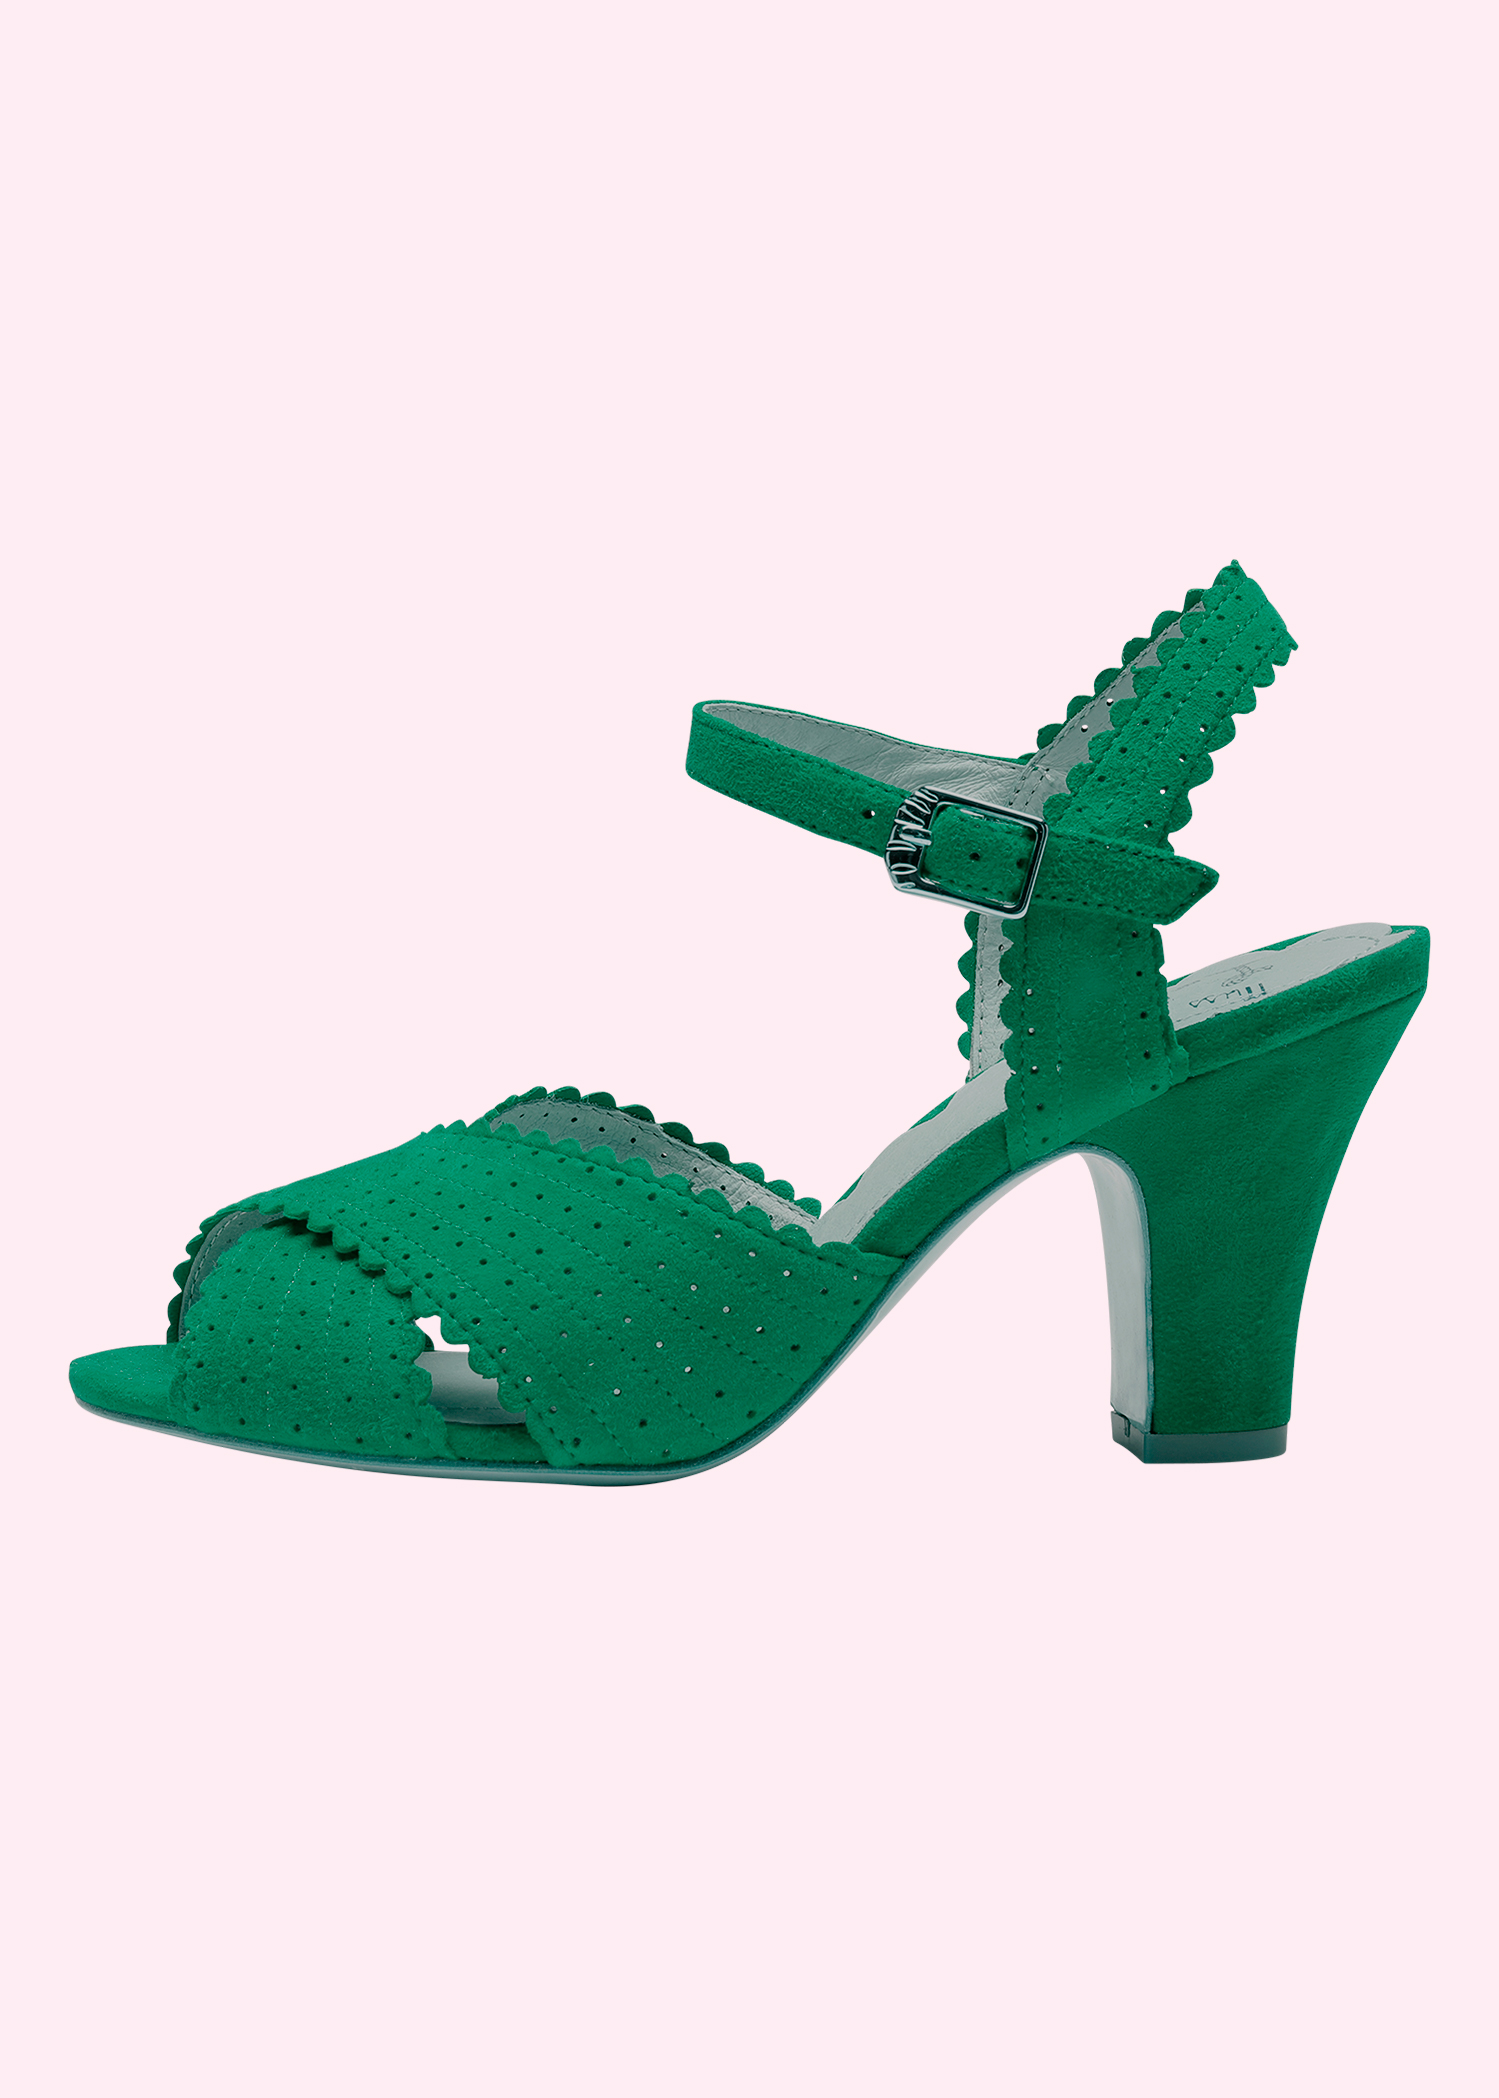 Miss L Fire Beatriz sandal in green suede exclusively for Mondo Kaos